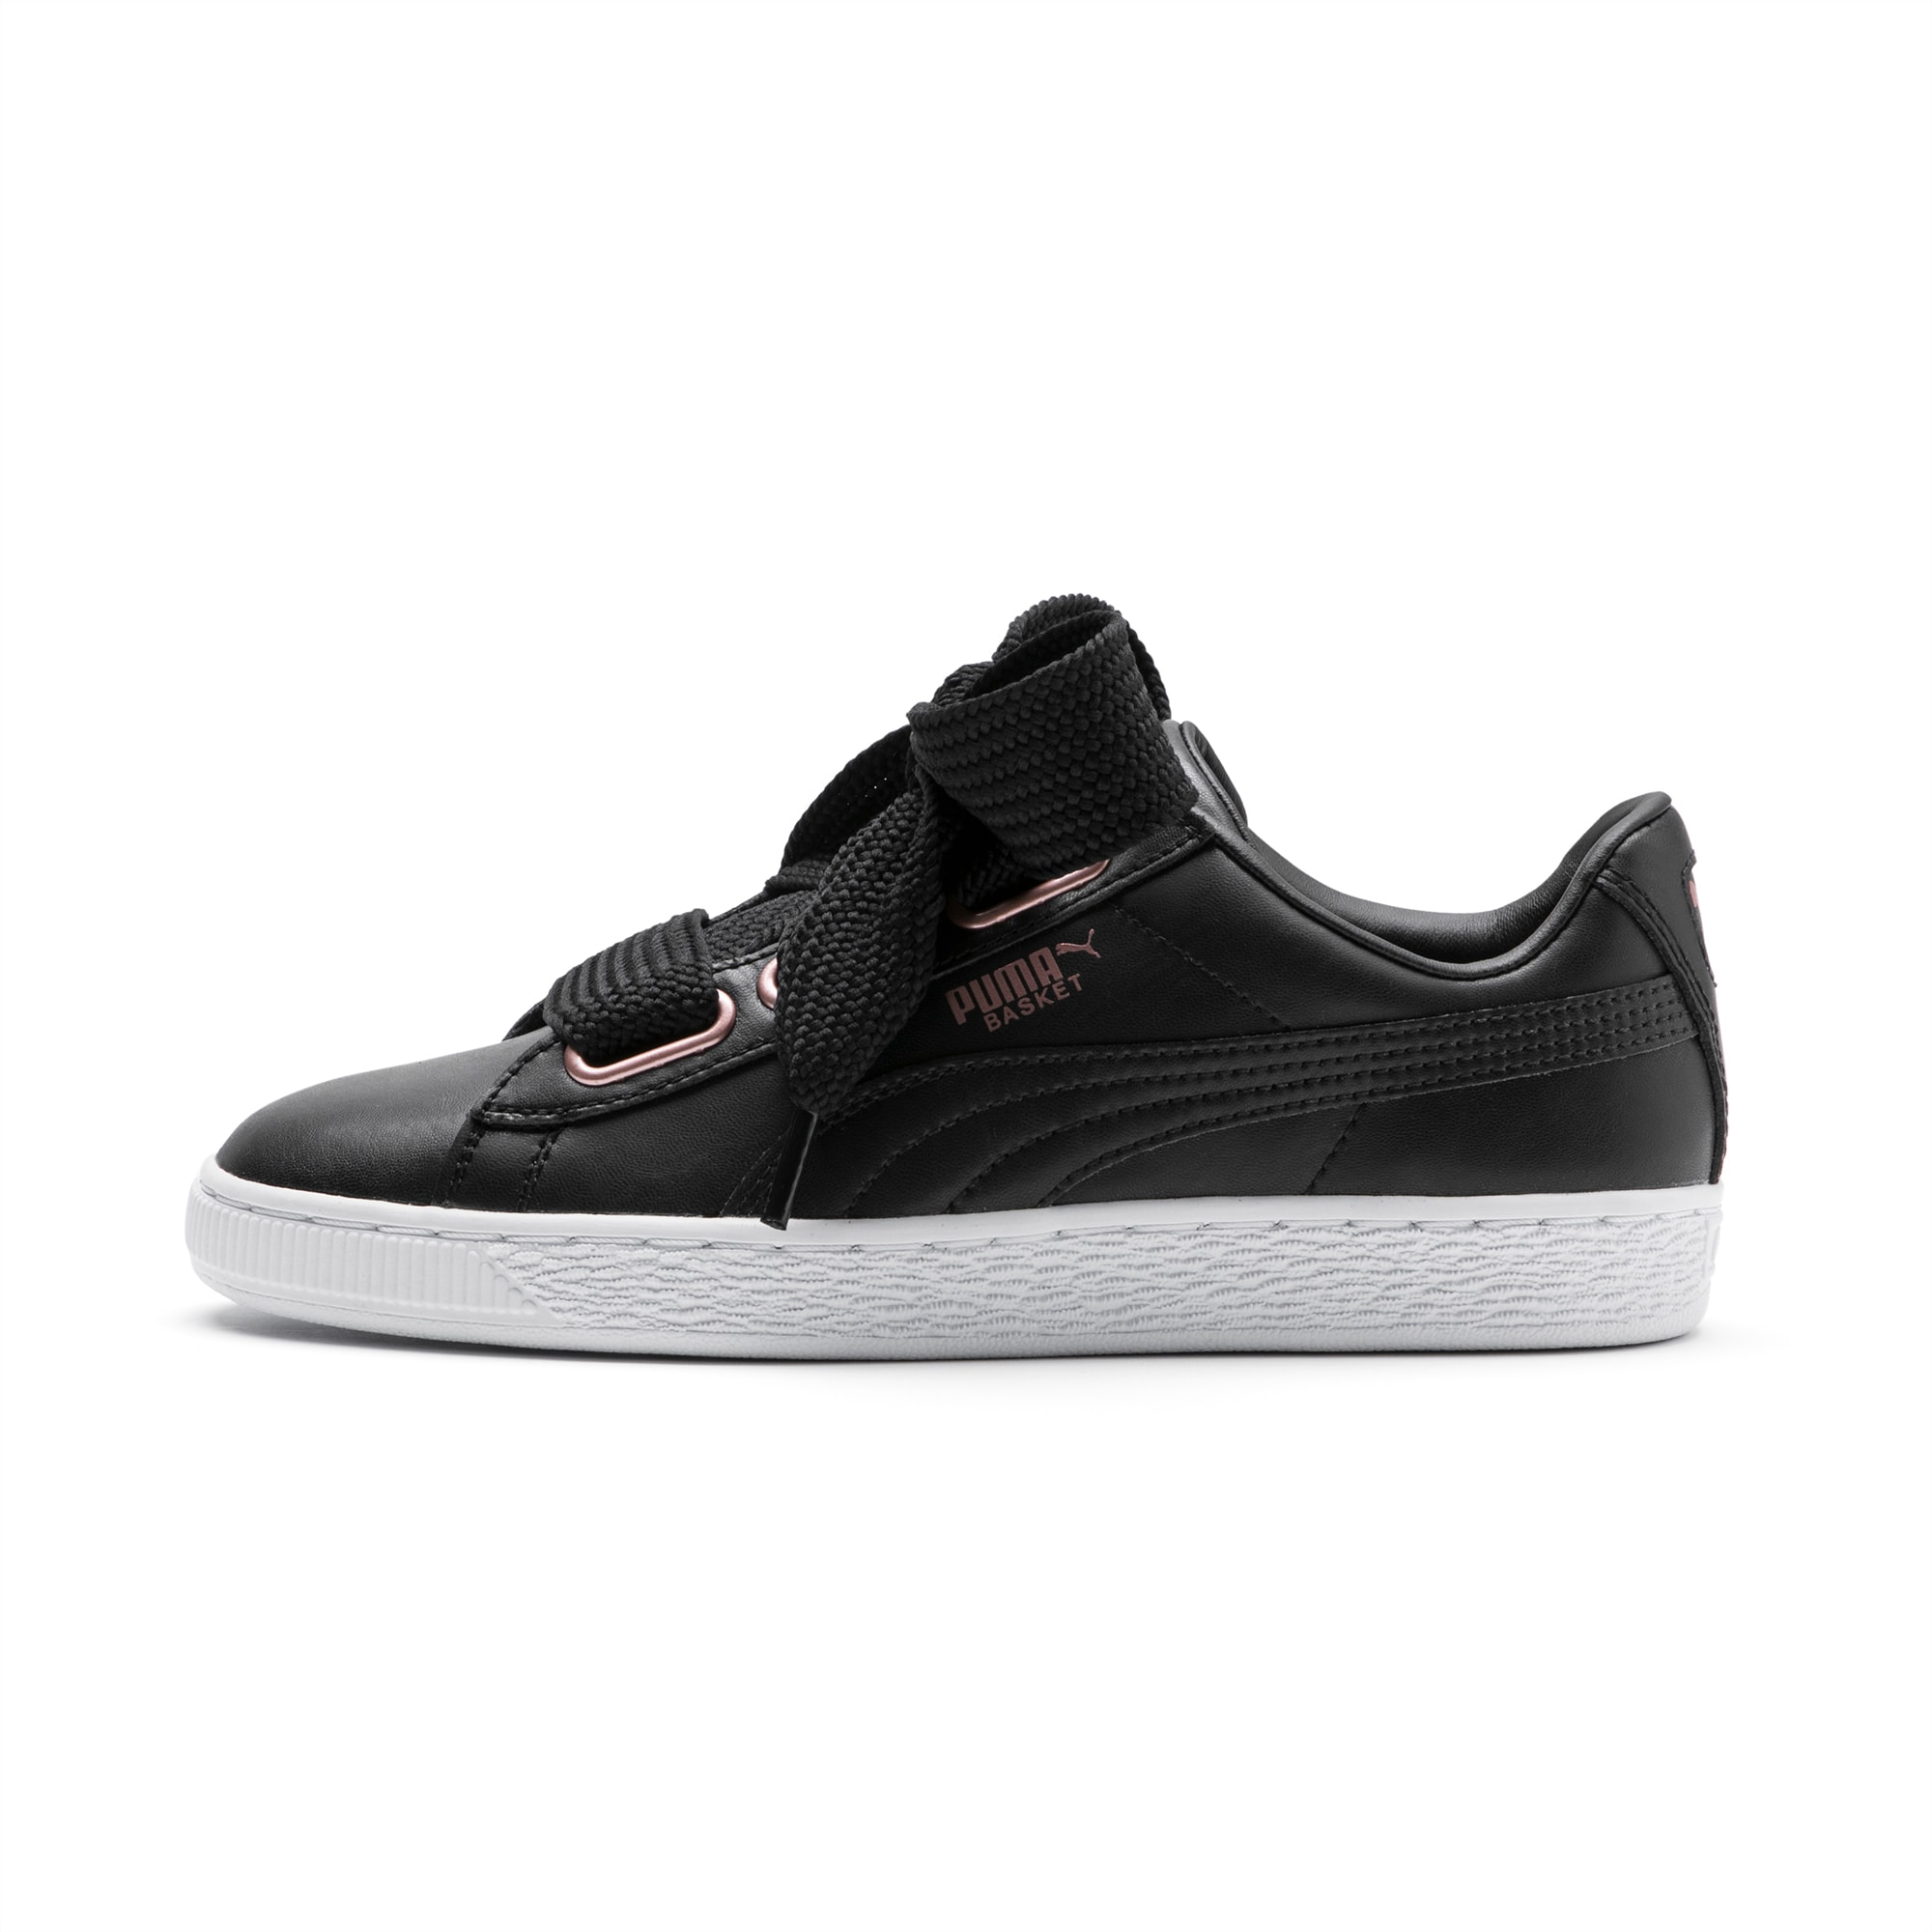 Asesor sin cable ajo  Basket Heart Leather Women's Trainers | PUMA Shoes | PUMA